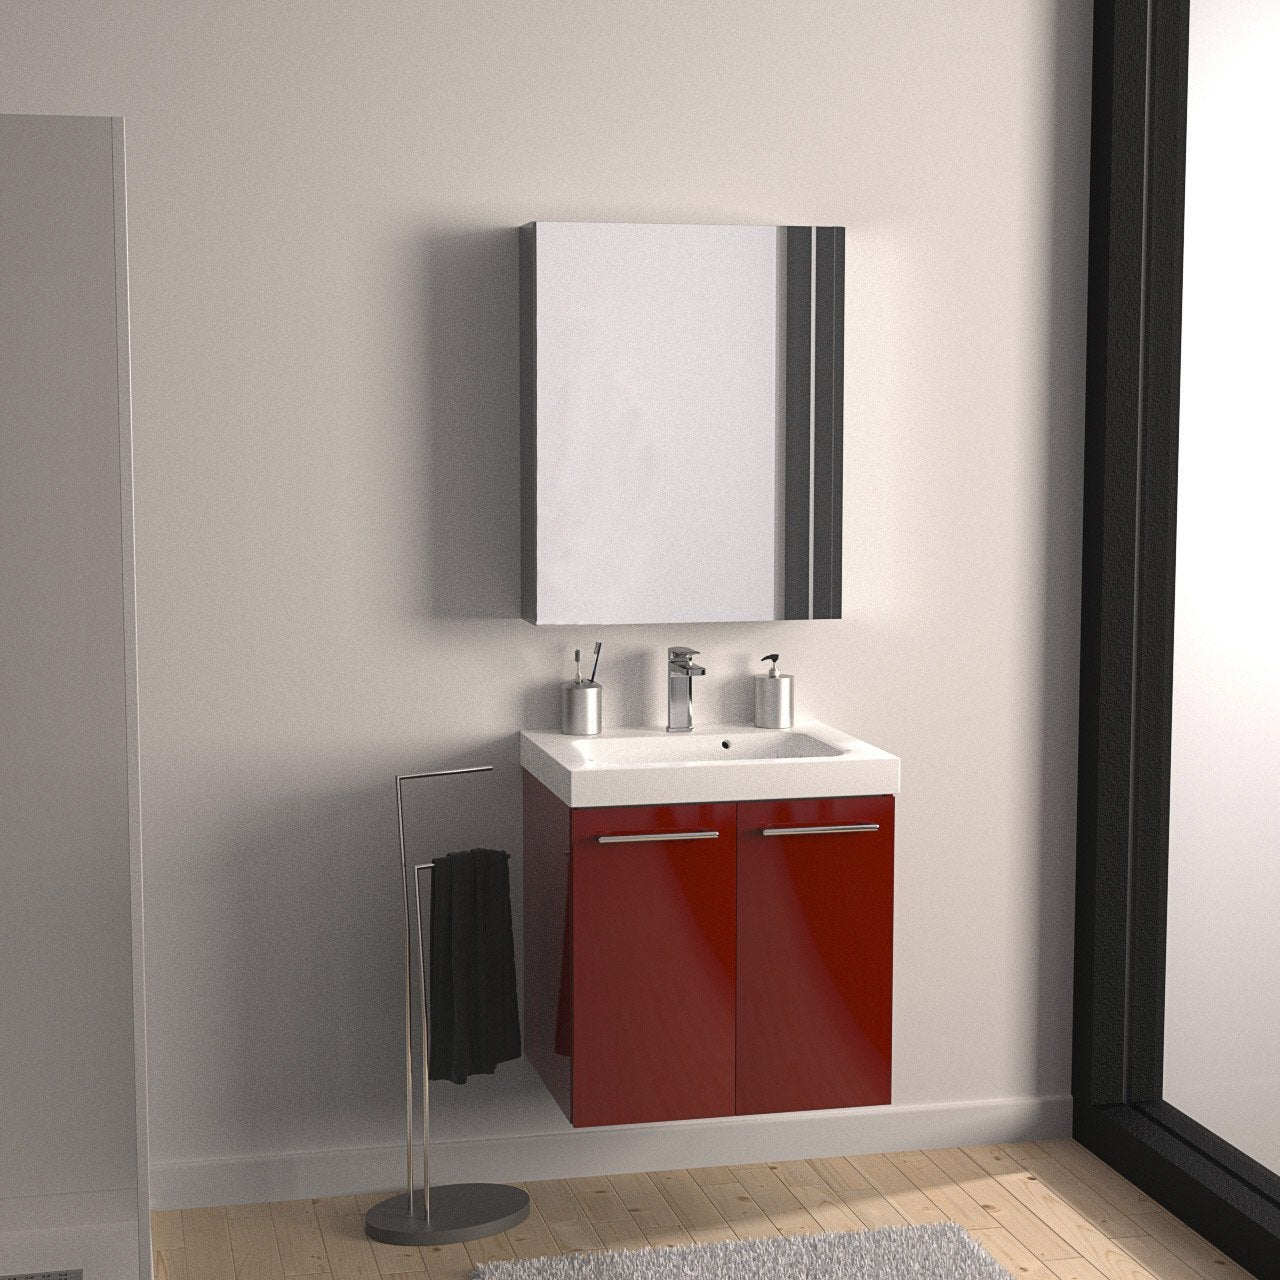 Meuble lavabo leroy merlin